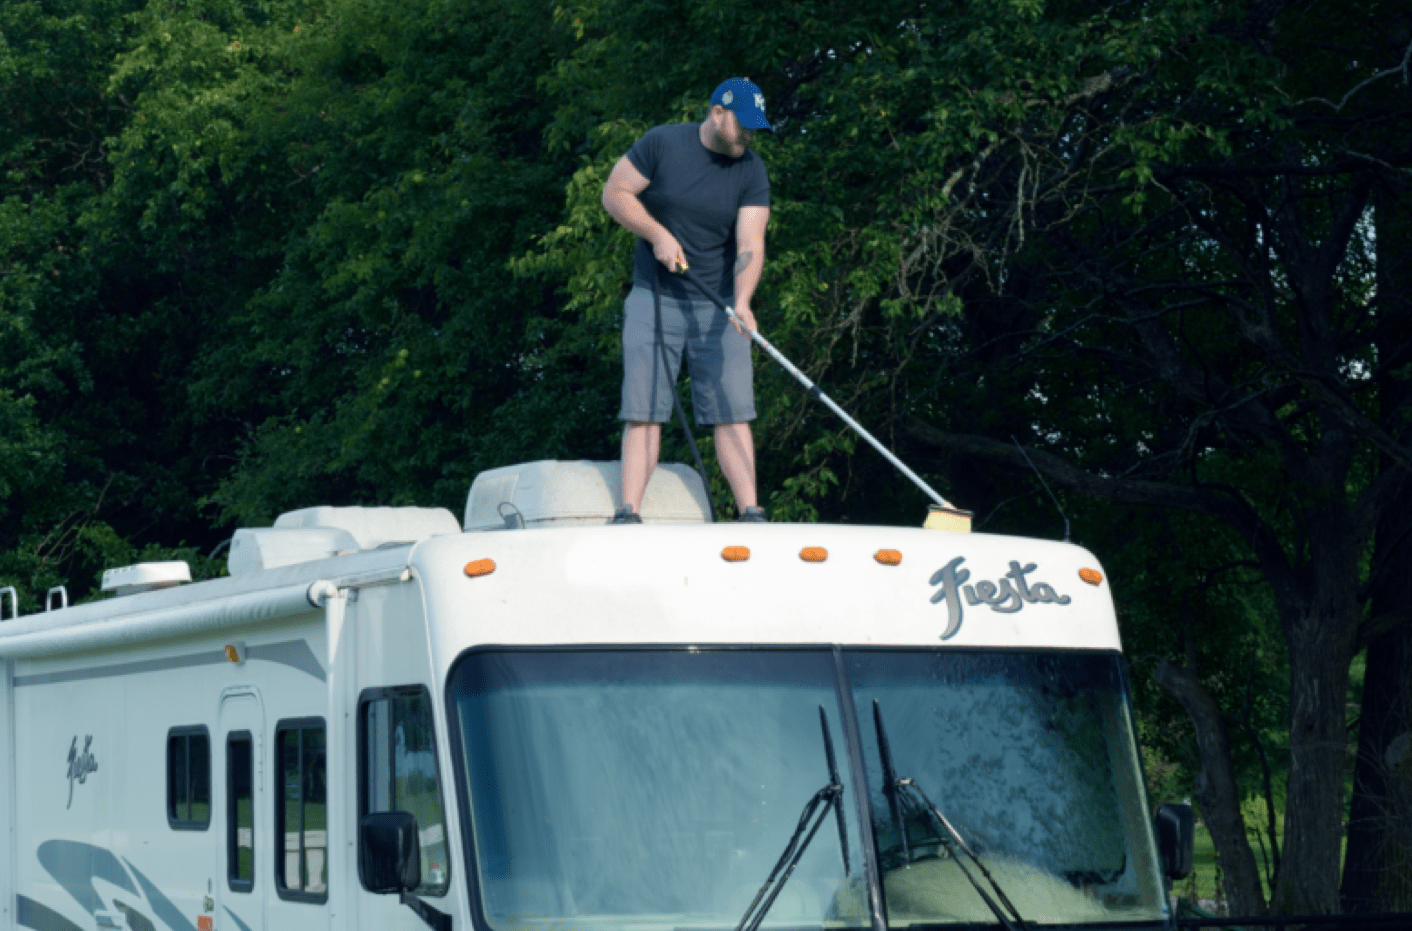 Cleaning a RV rubber roof